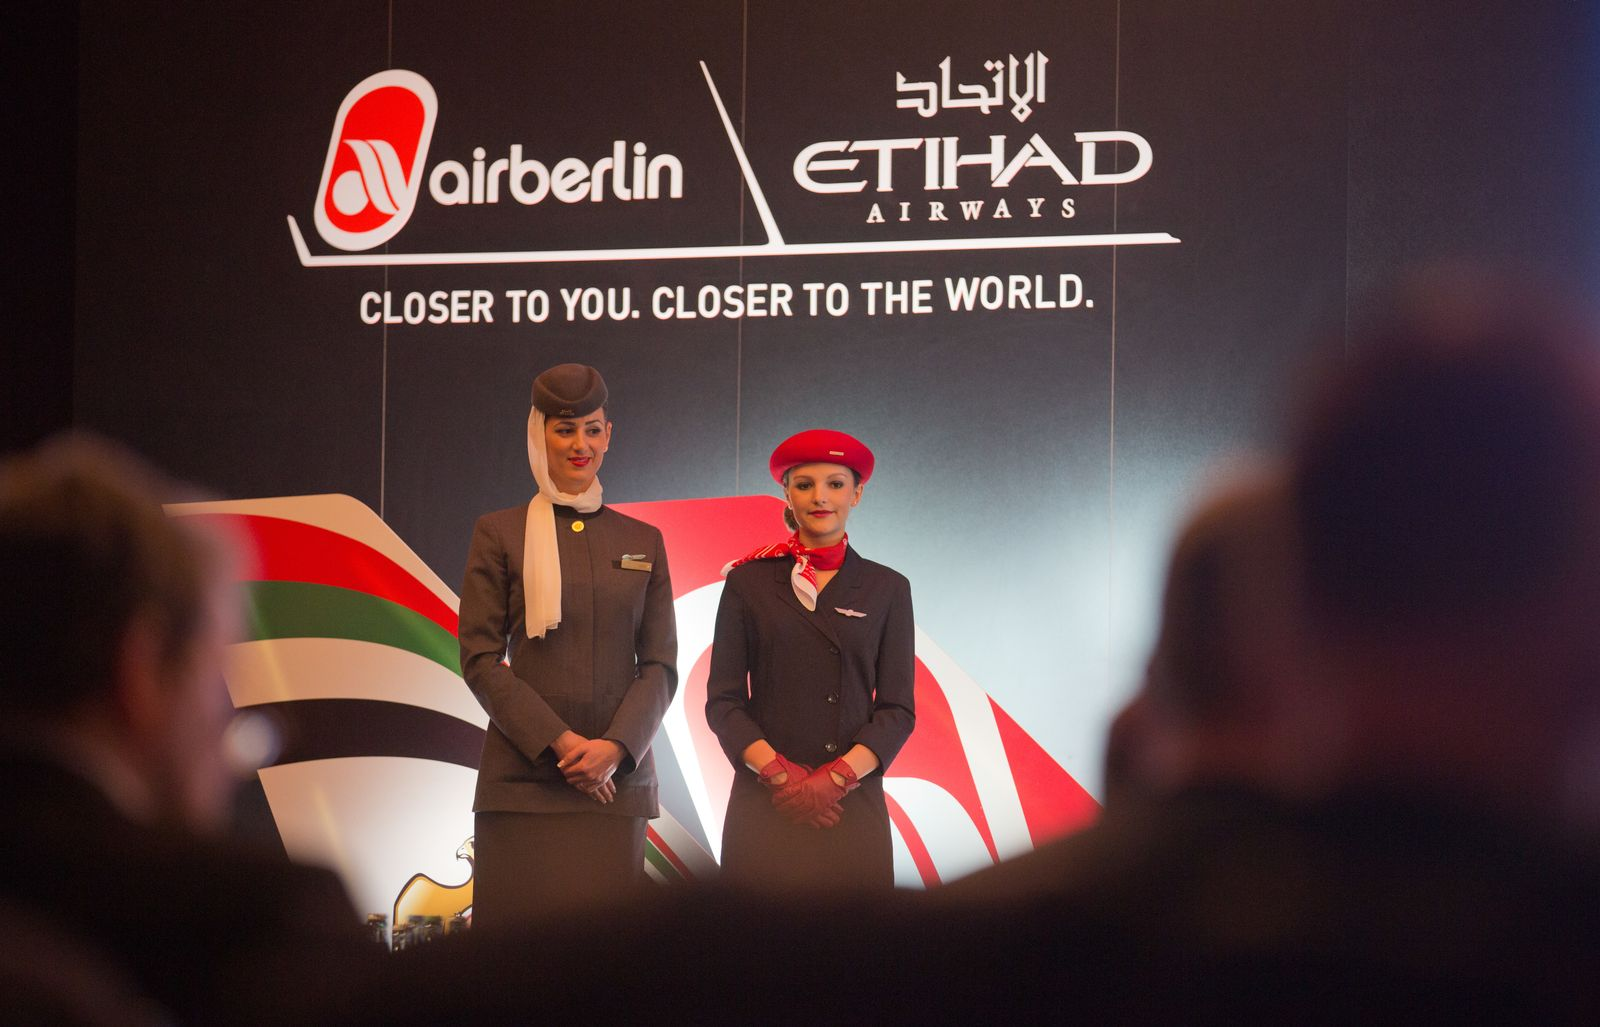 Air Berlin / Etihad